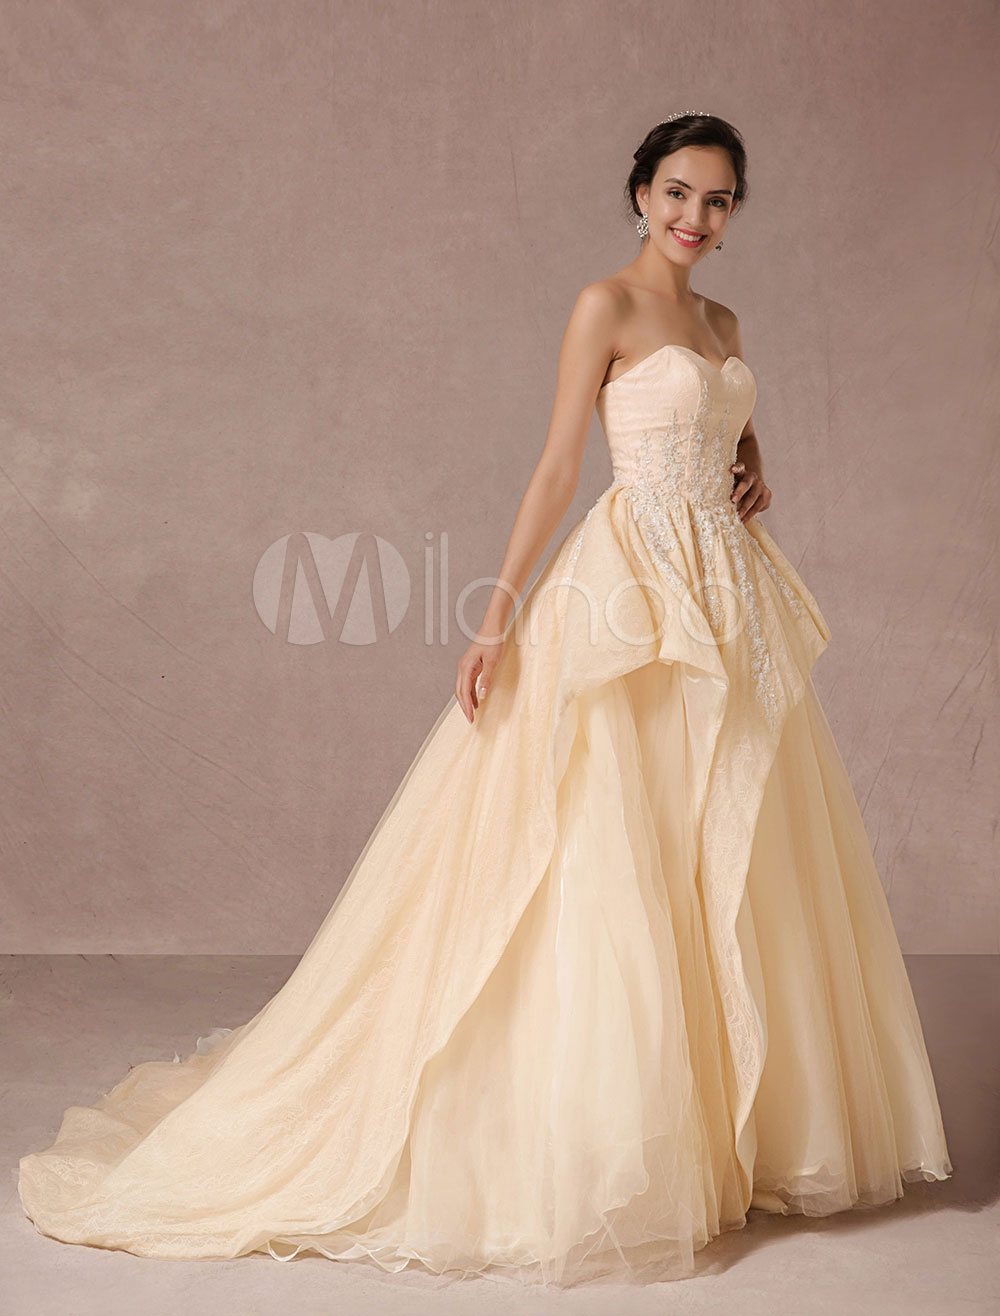 Champagne Wedding Dress Lace Beading Chapel Train Strapless Tulle Bridal Gown Lace-up Luxury Pricess Pageant Dress